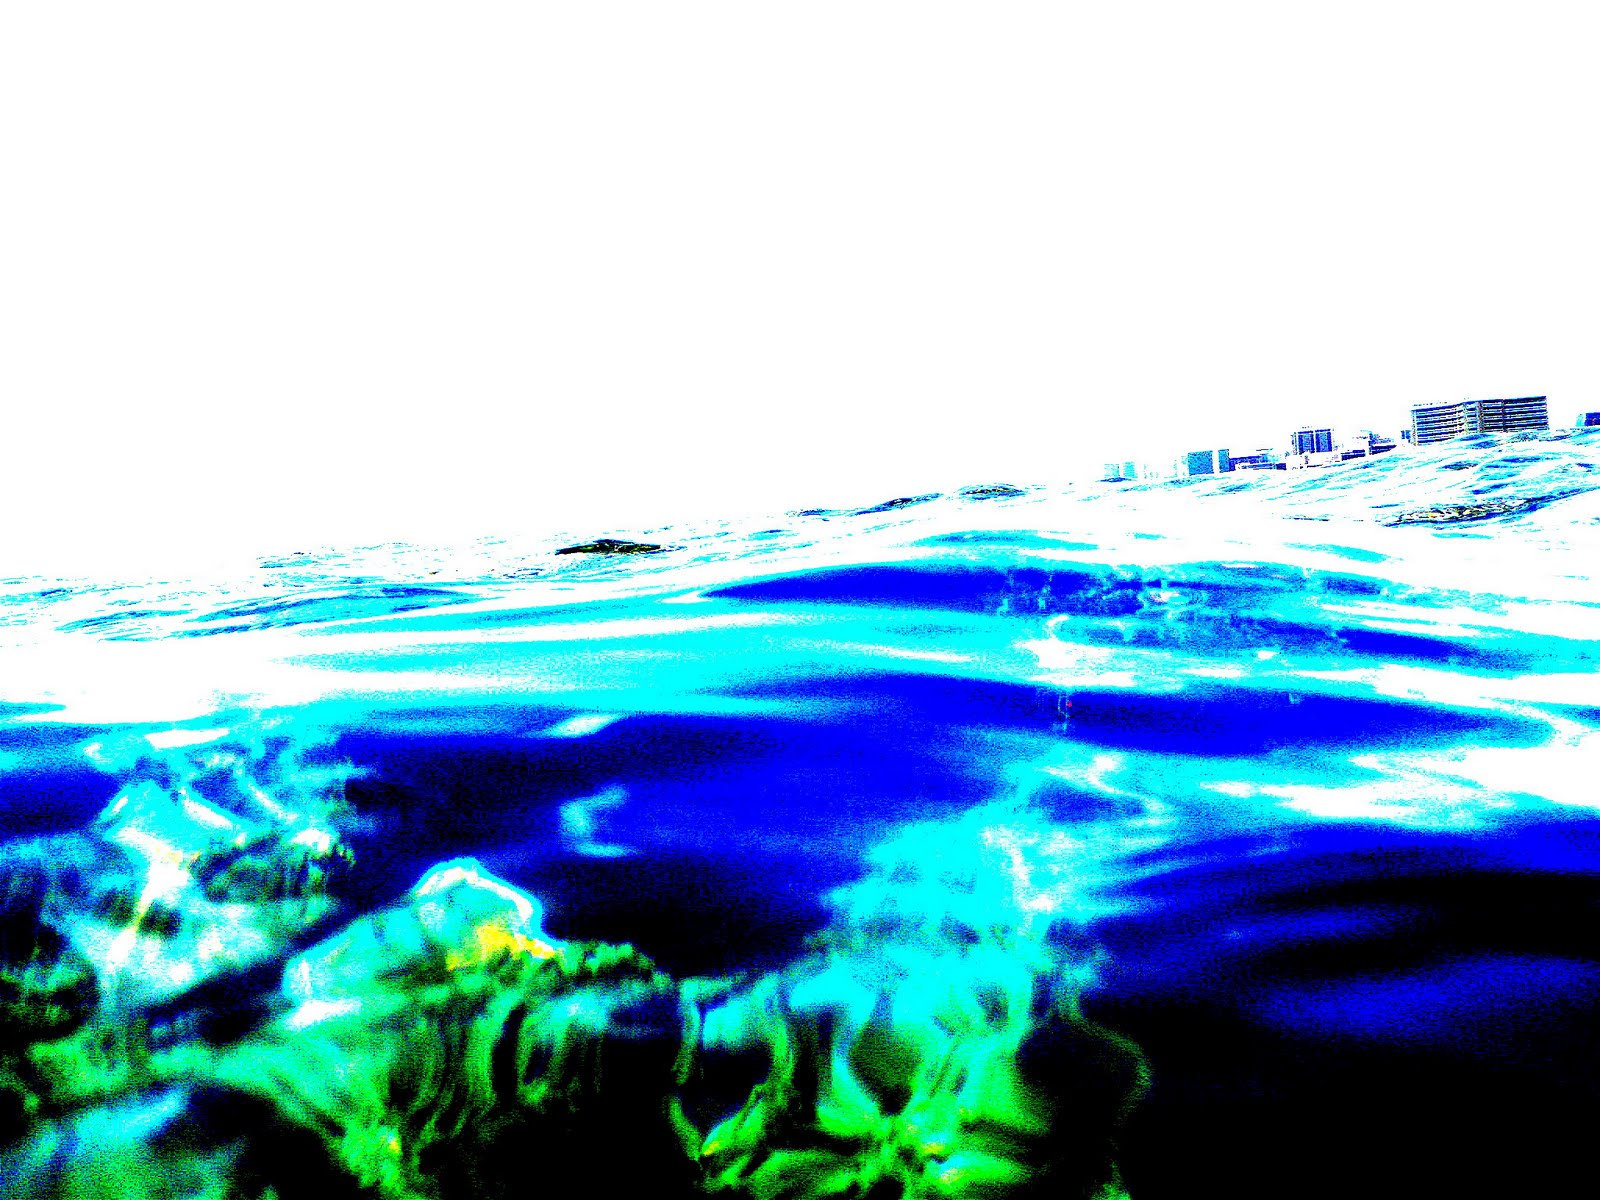 Psychedelic Beach Images - Reverse Search